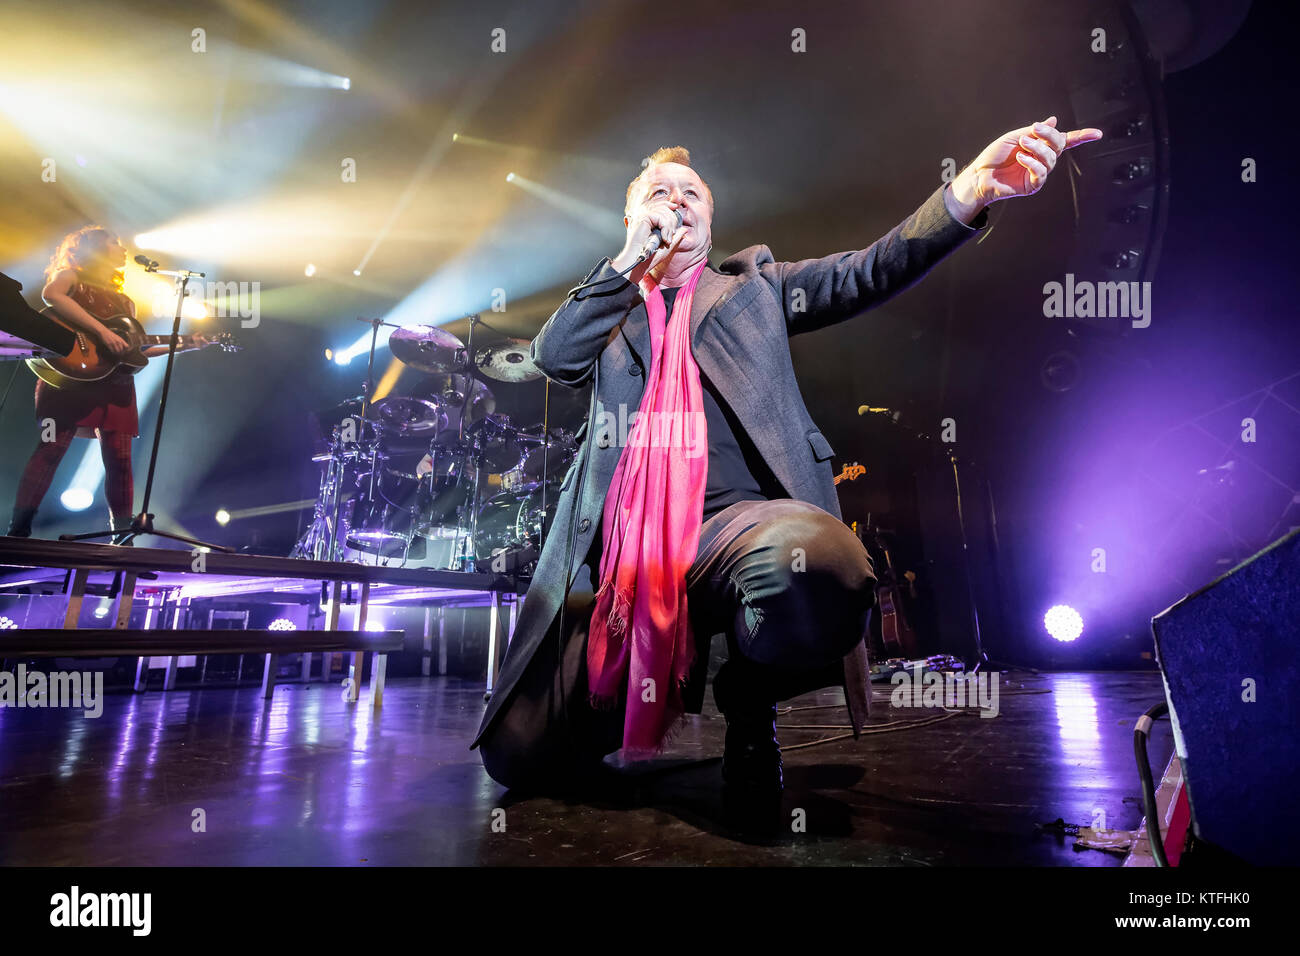 The Scottish rock band Simple Minds performs a live concert at Sentrum Scene in Oslo. Here singer, songwriter and - Stock Image